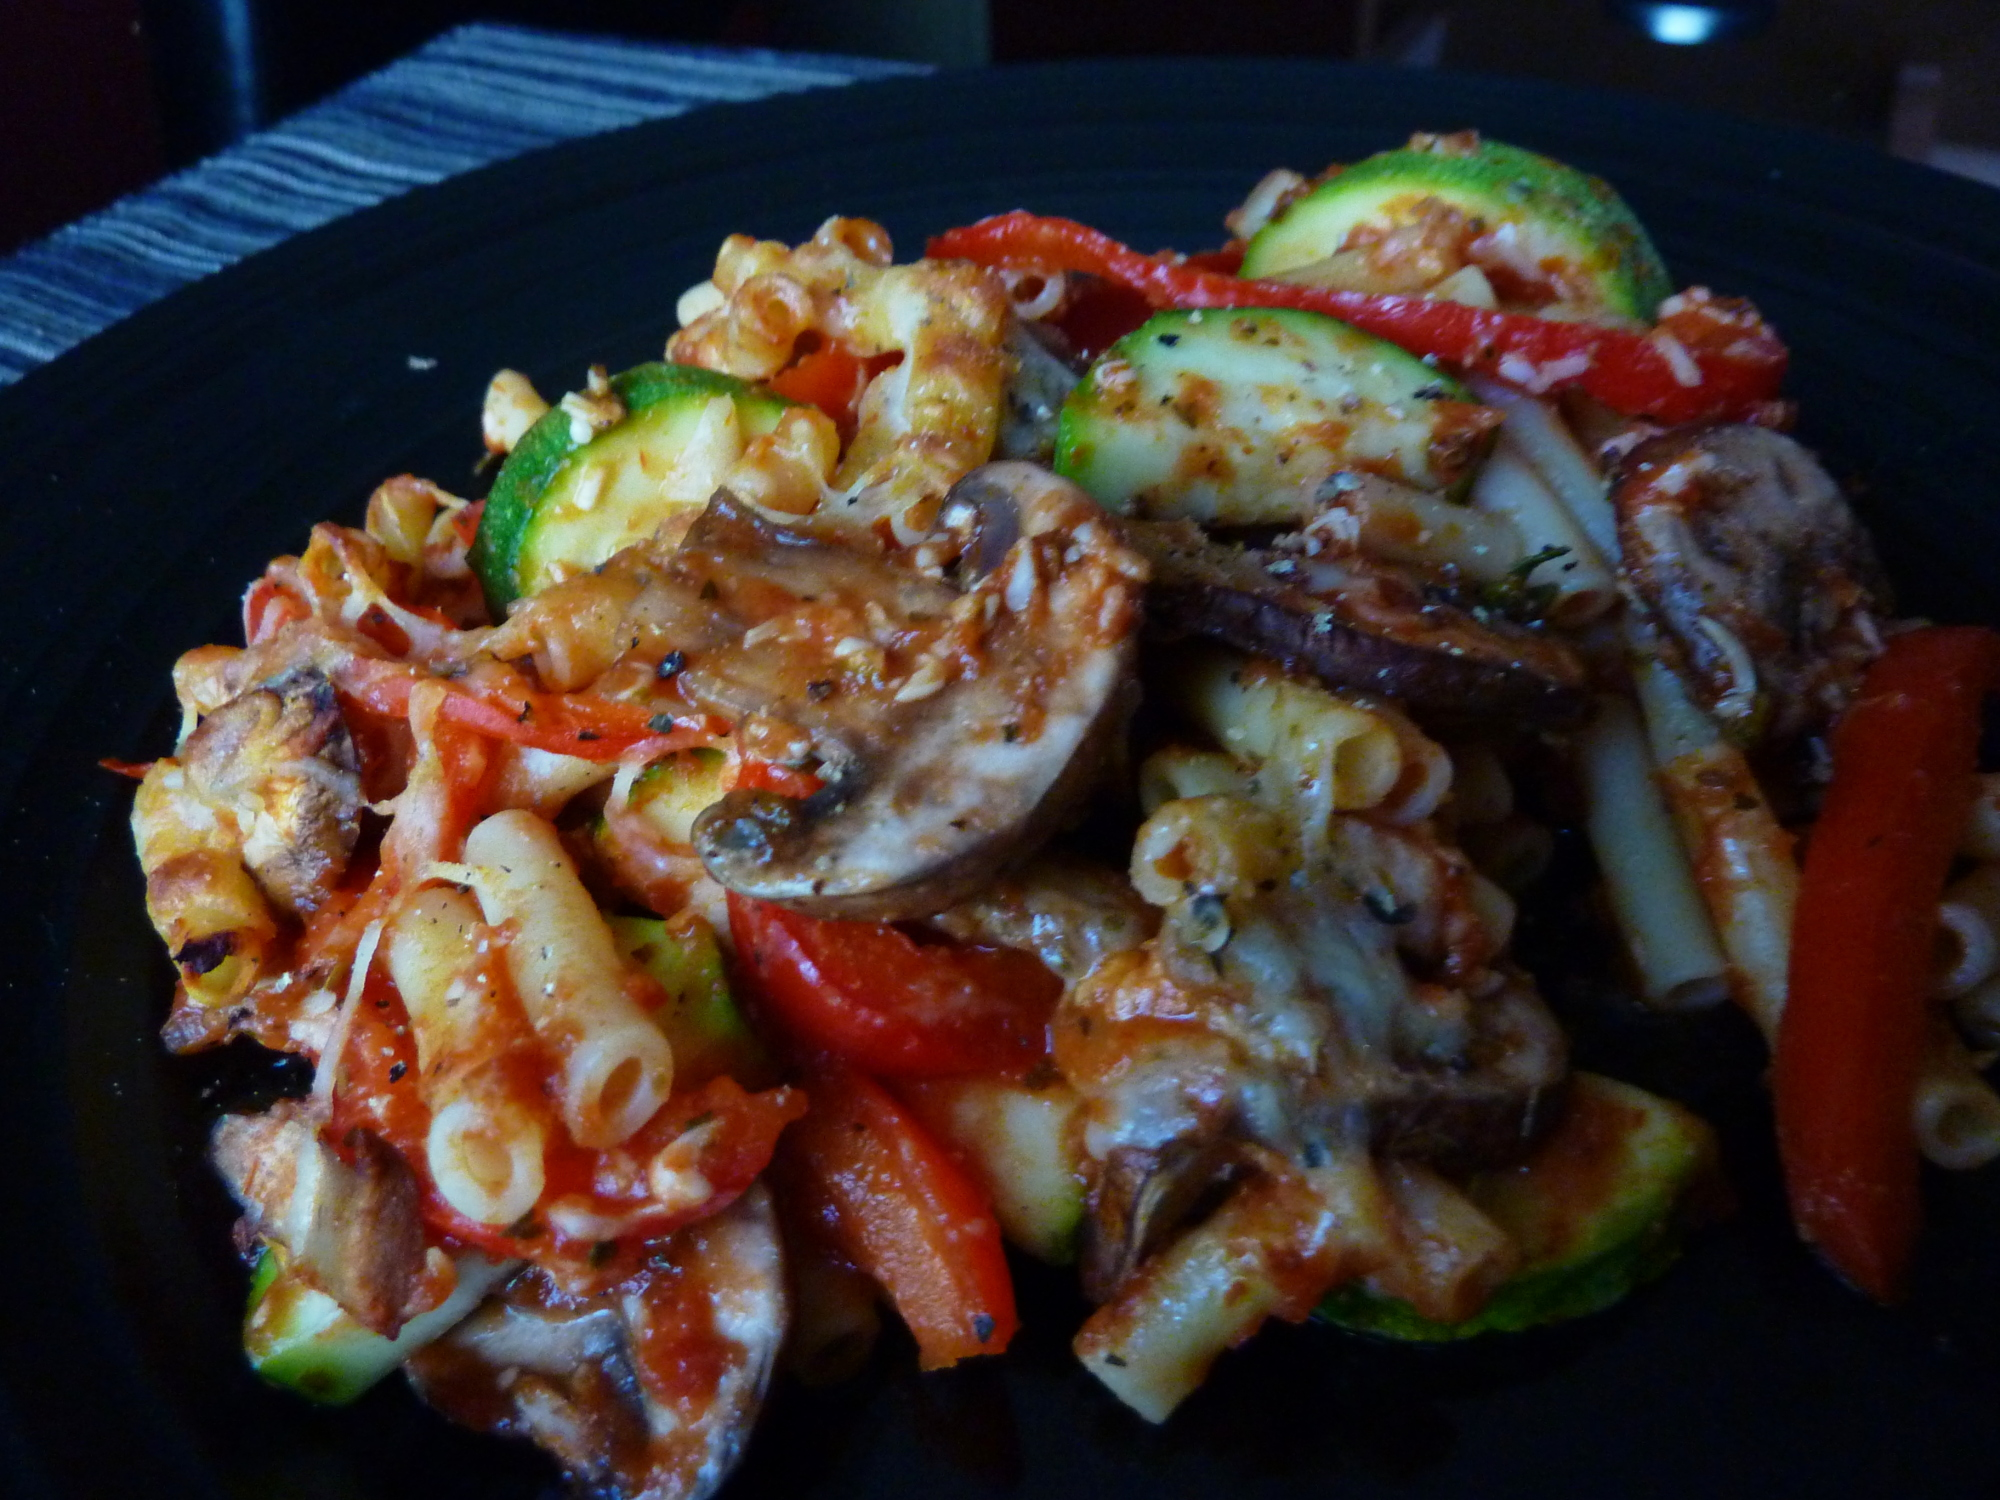 This dish, Tuscan Vegetable Baked Ziti from kraftfoods.com was good ...